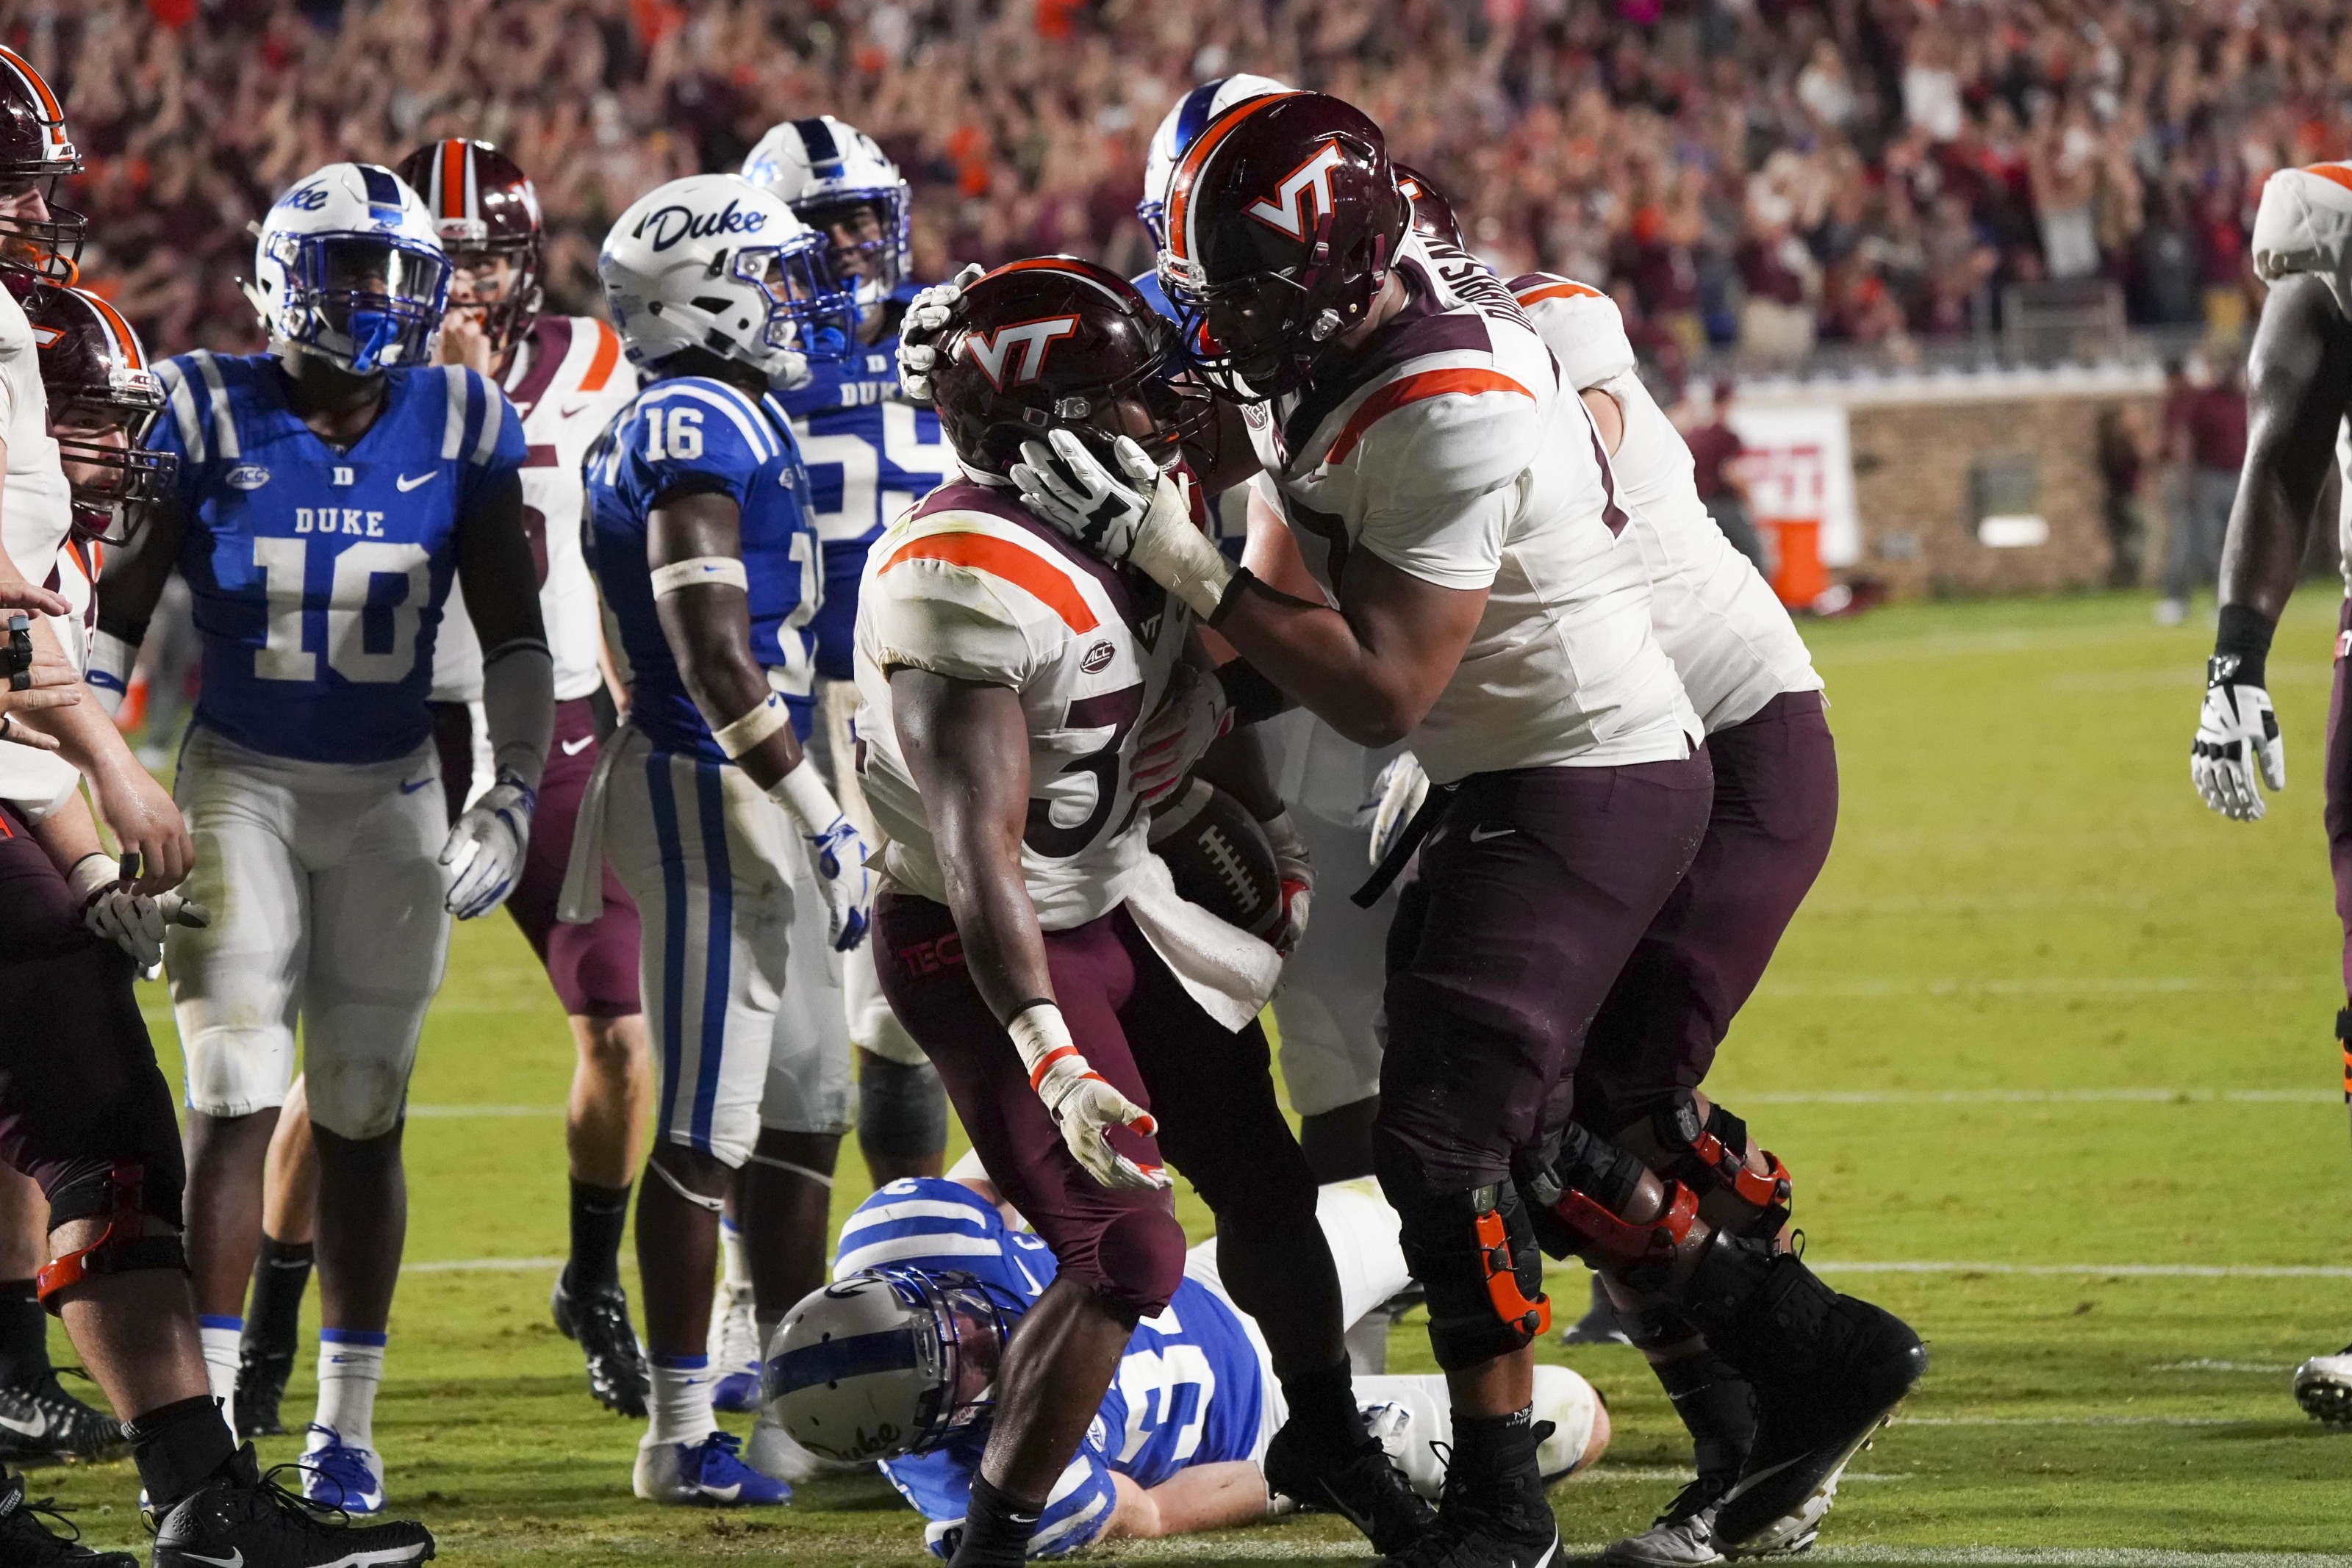 2021 Nfl Draft Virginia Tech Ot Christian Darrisaw Is On The Rise